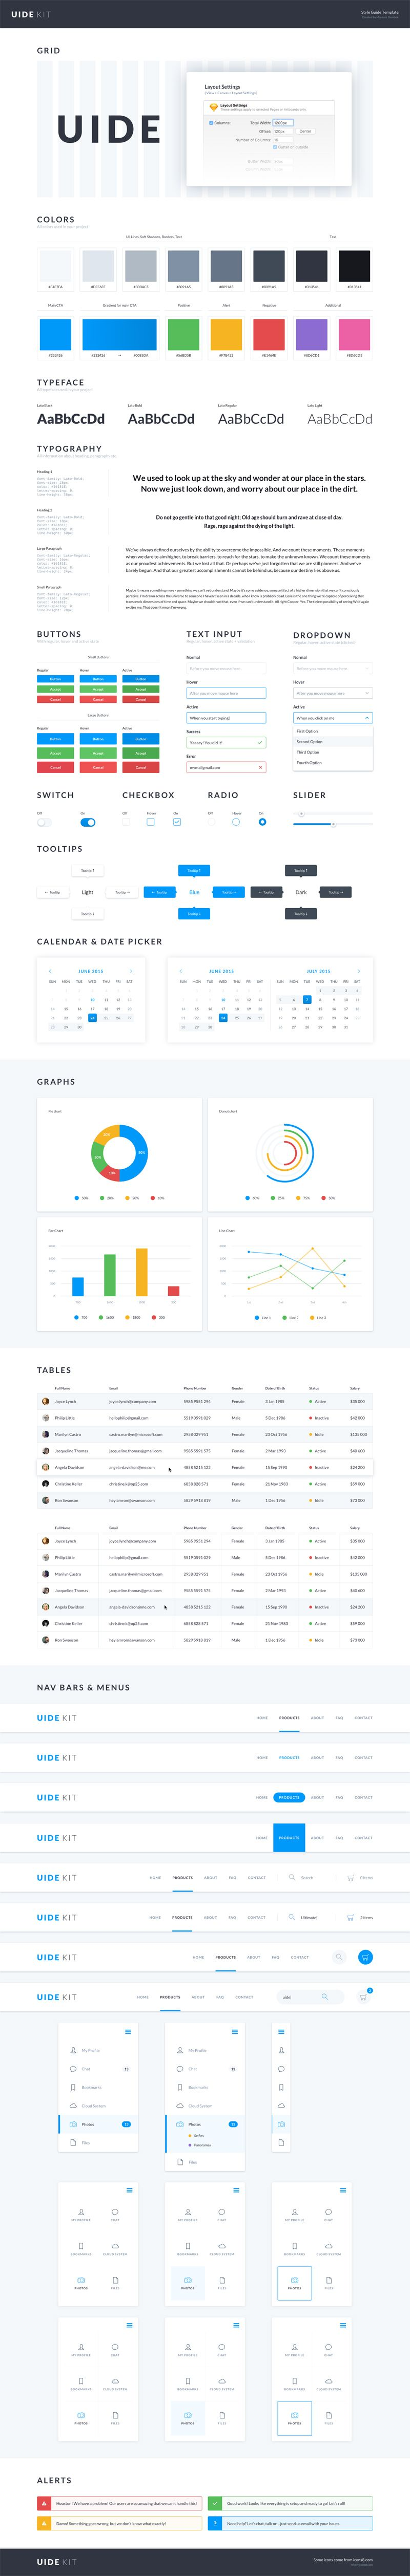 UIDE Kit - Sketch Style Guide Template   UX UI   Pinterest ...